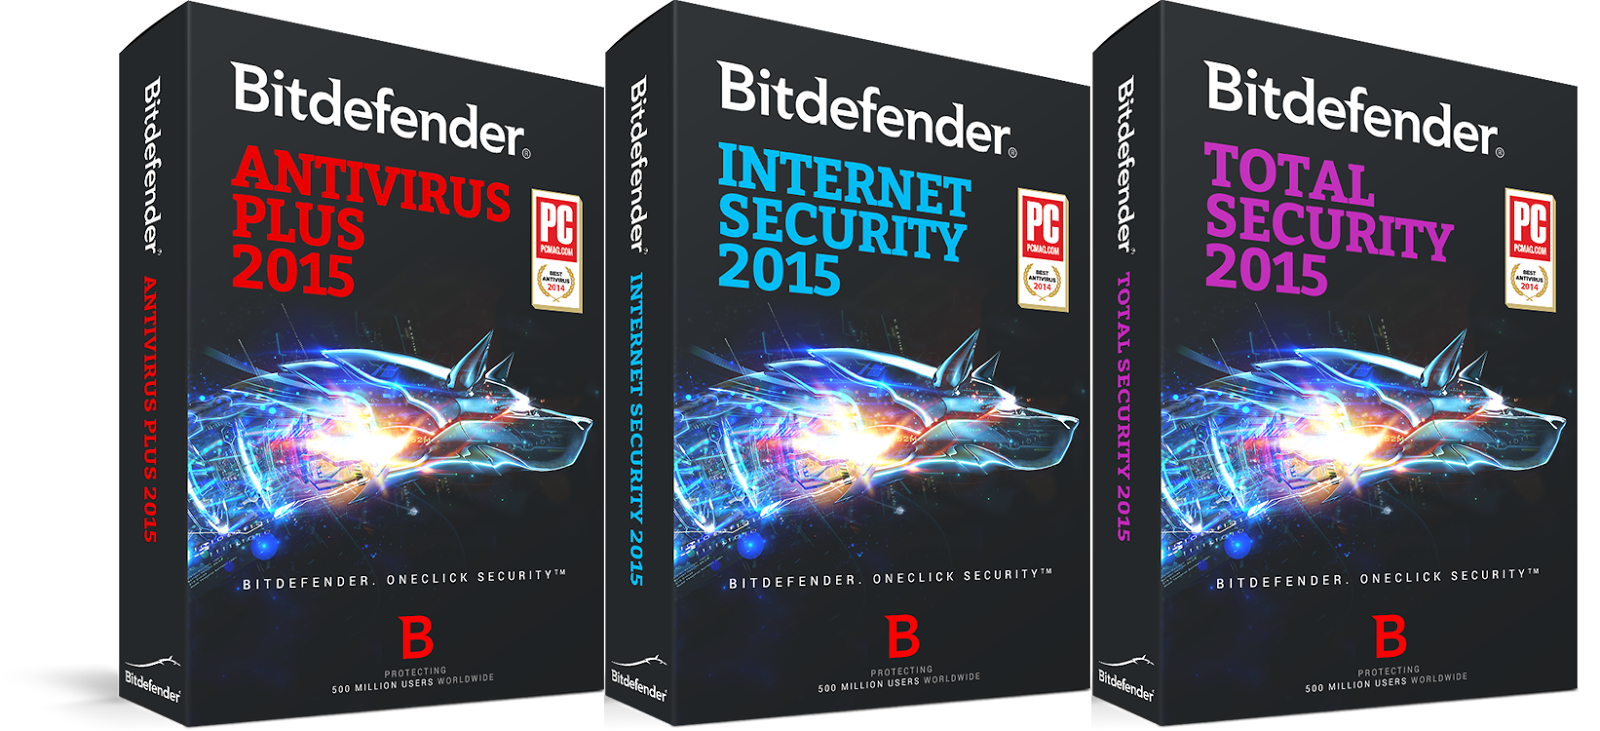 Bit Defender Internet Security Serial Keys 2015 Product Keys 2015,Bit Defender Internet Security Serial Keys serial number cd keys activation keys 2015